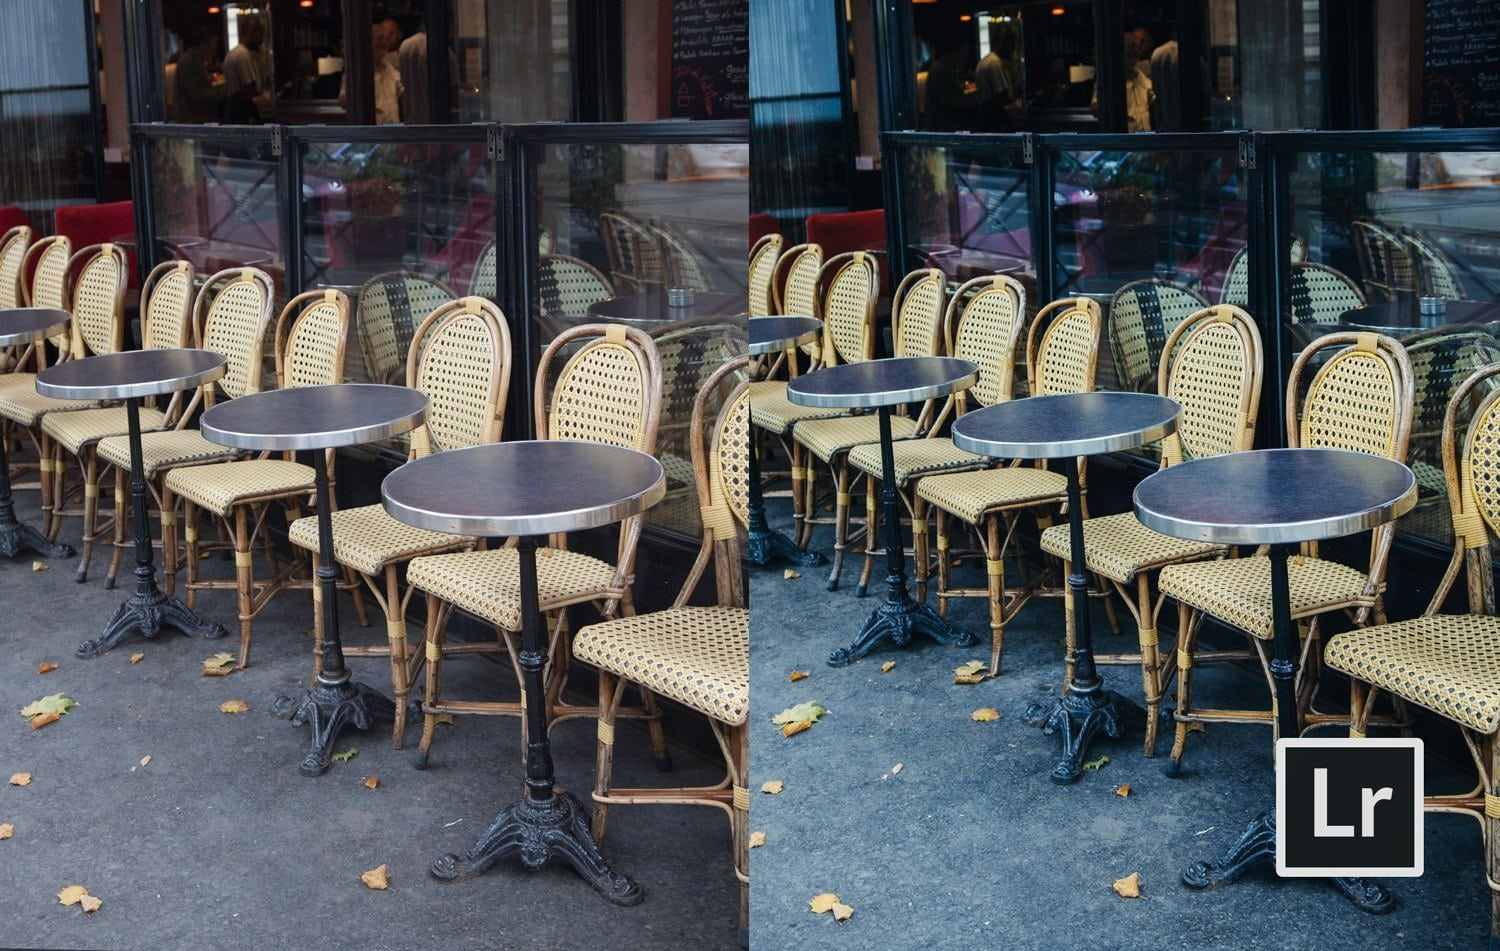 Free-Lightroom-Preset-Cafe-Cool-Before-and-After